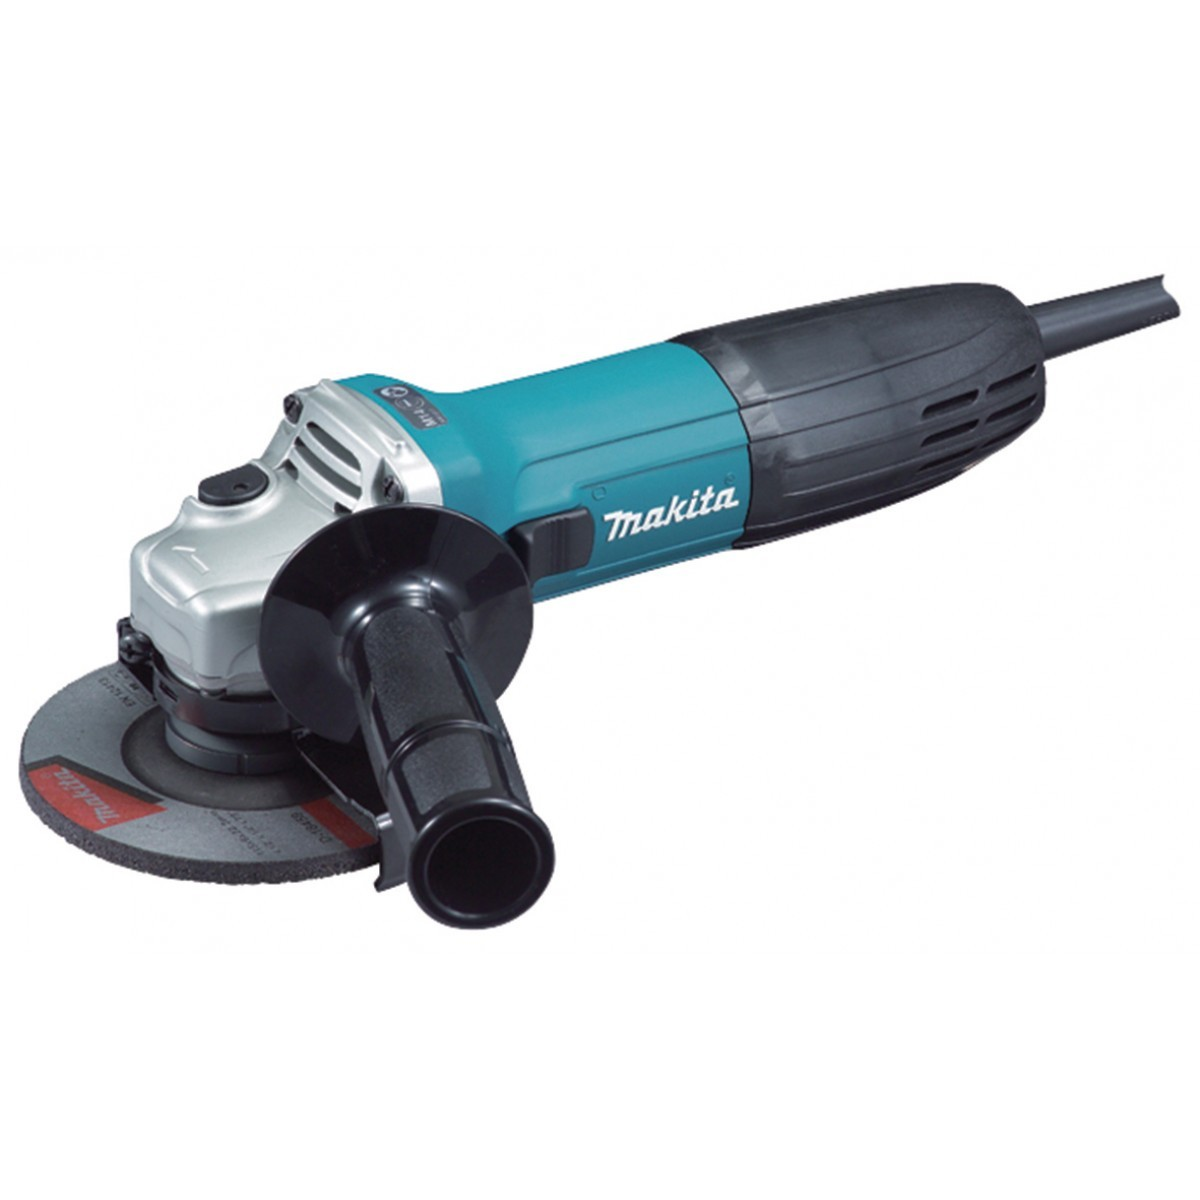 Makita GA4530R Slim Angle Grinder with Anti-Restart 240v